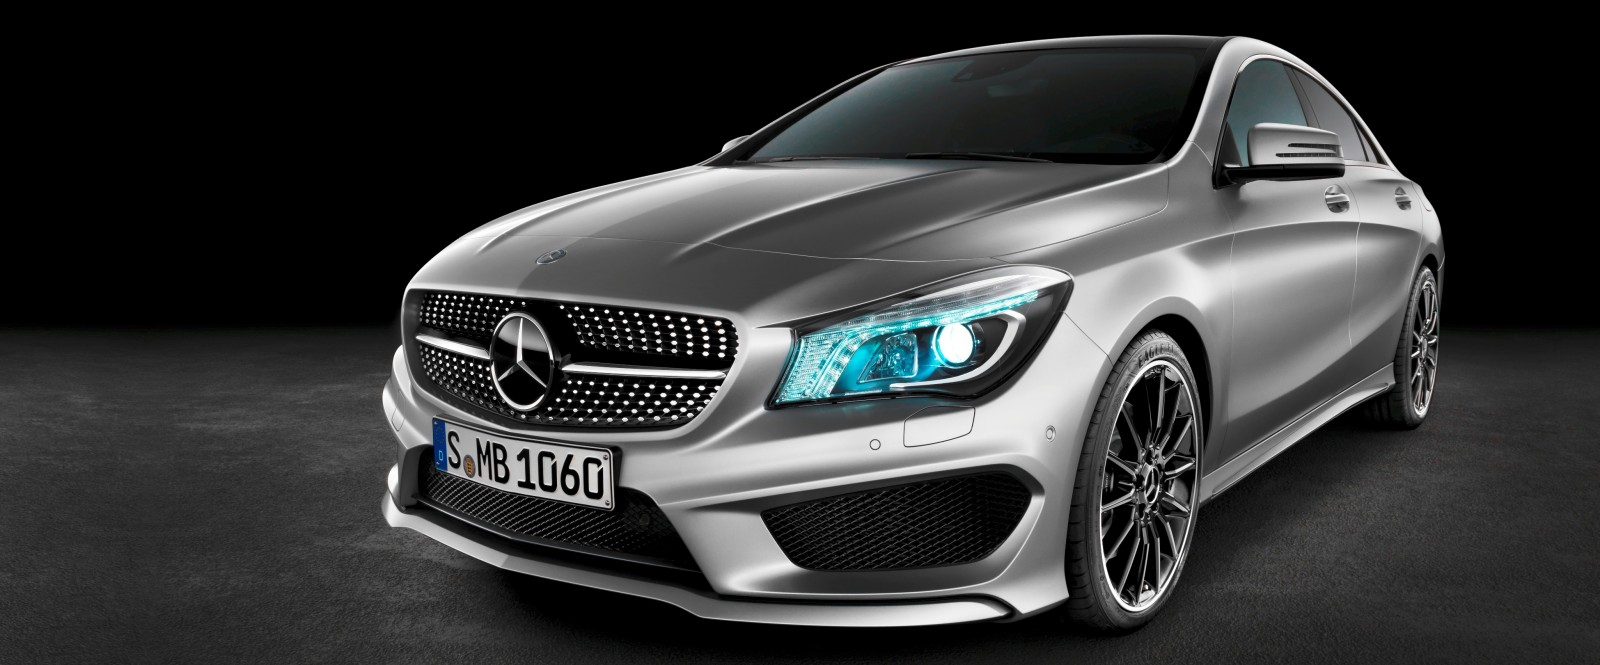 Race start video 2014 cla45 amg shows impressive launch for 2014 mercedes benz cla class cla250